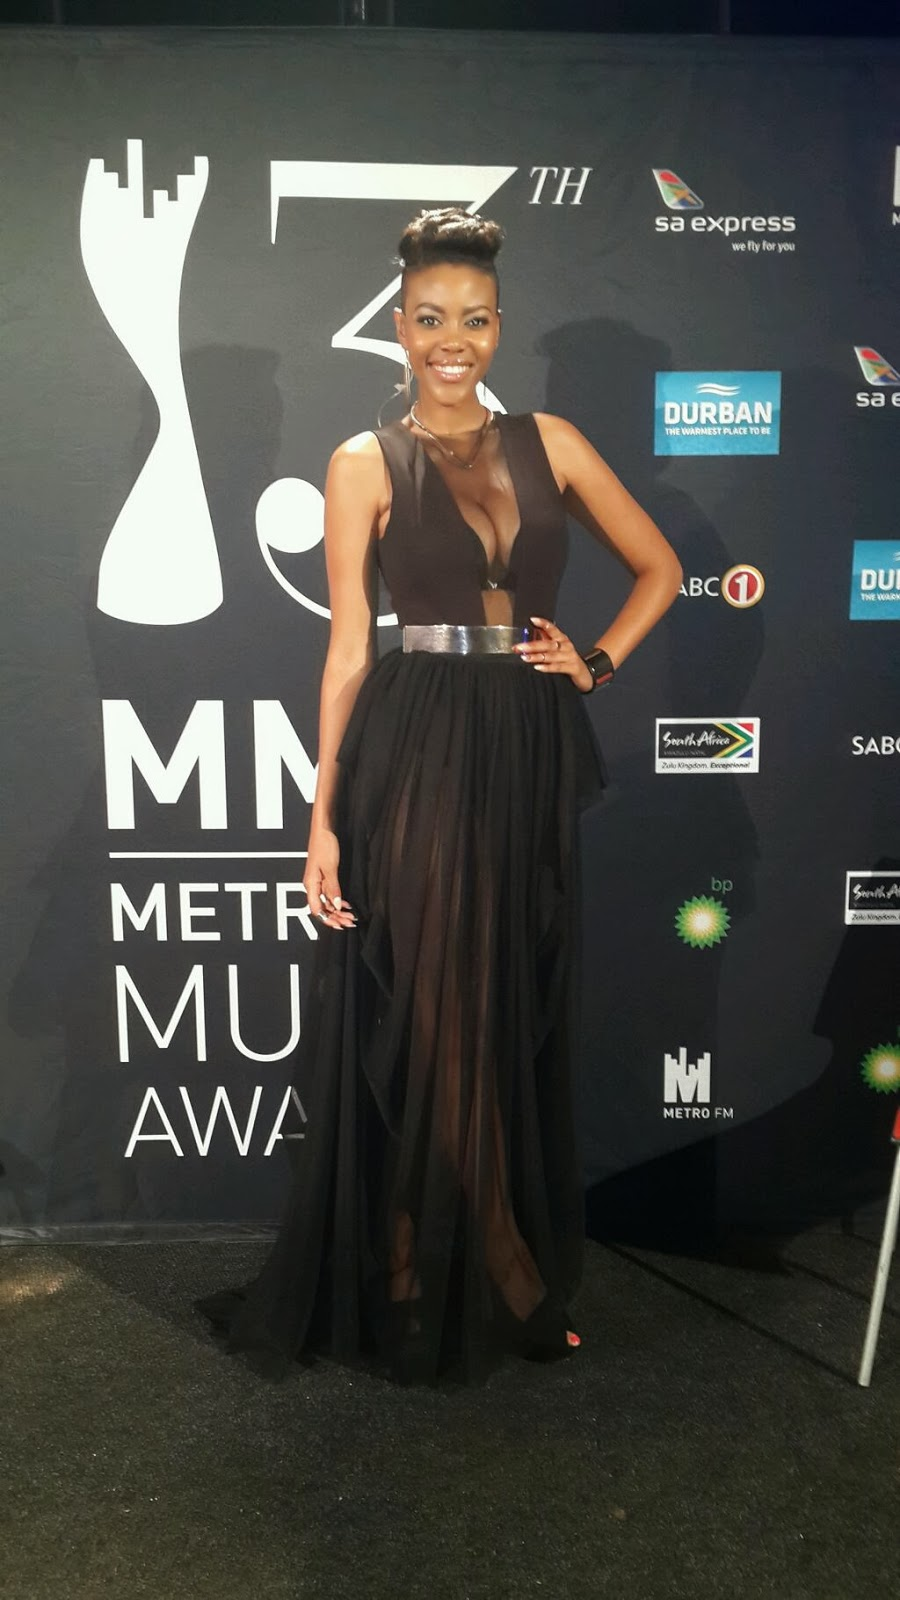 Fashion Beyond Trends Metro Fm Awards 2014 My Review